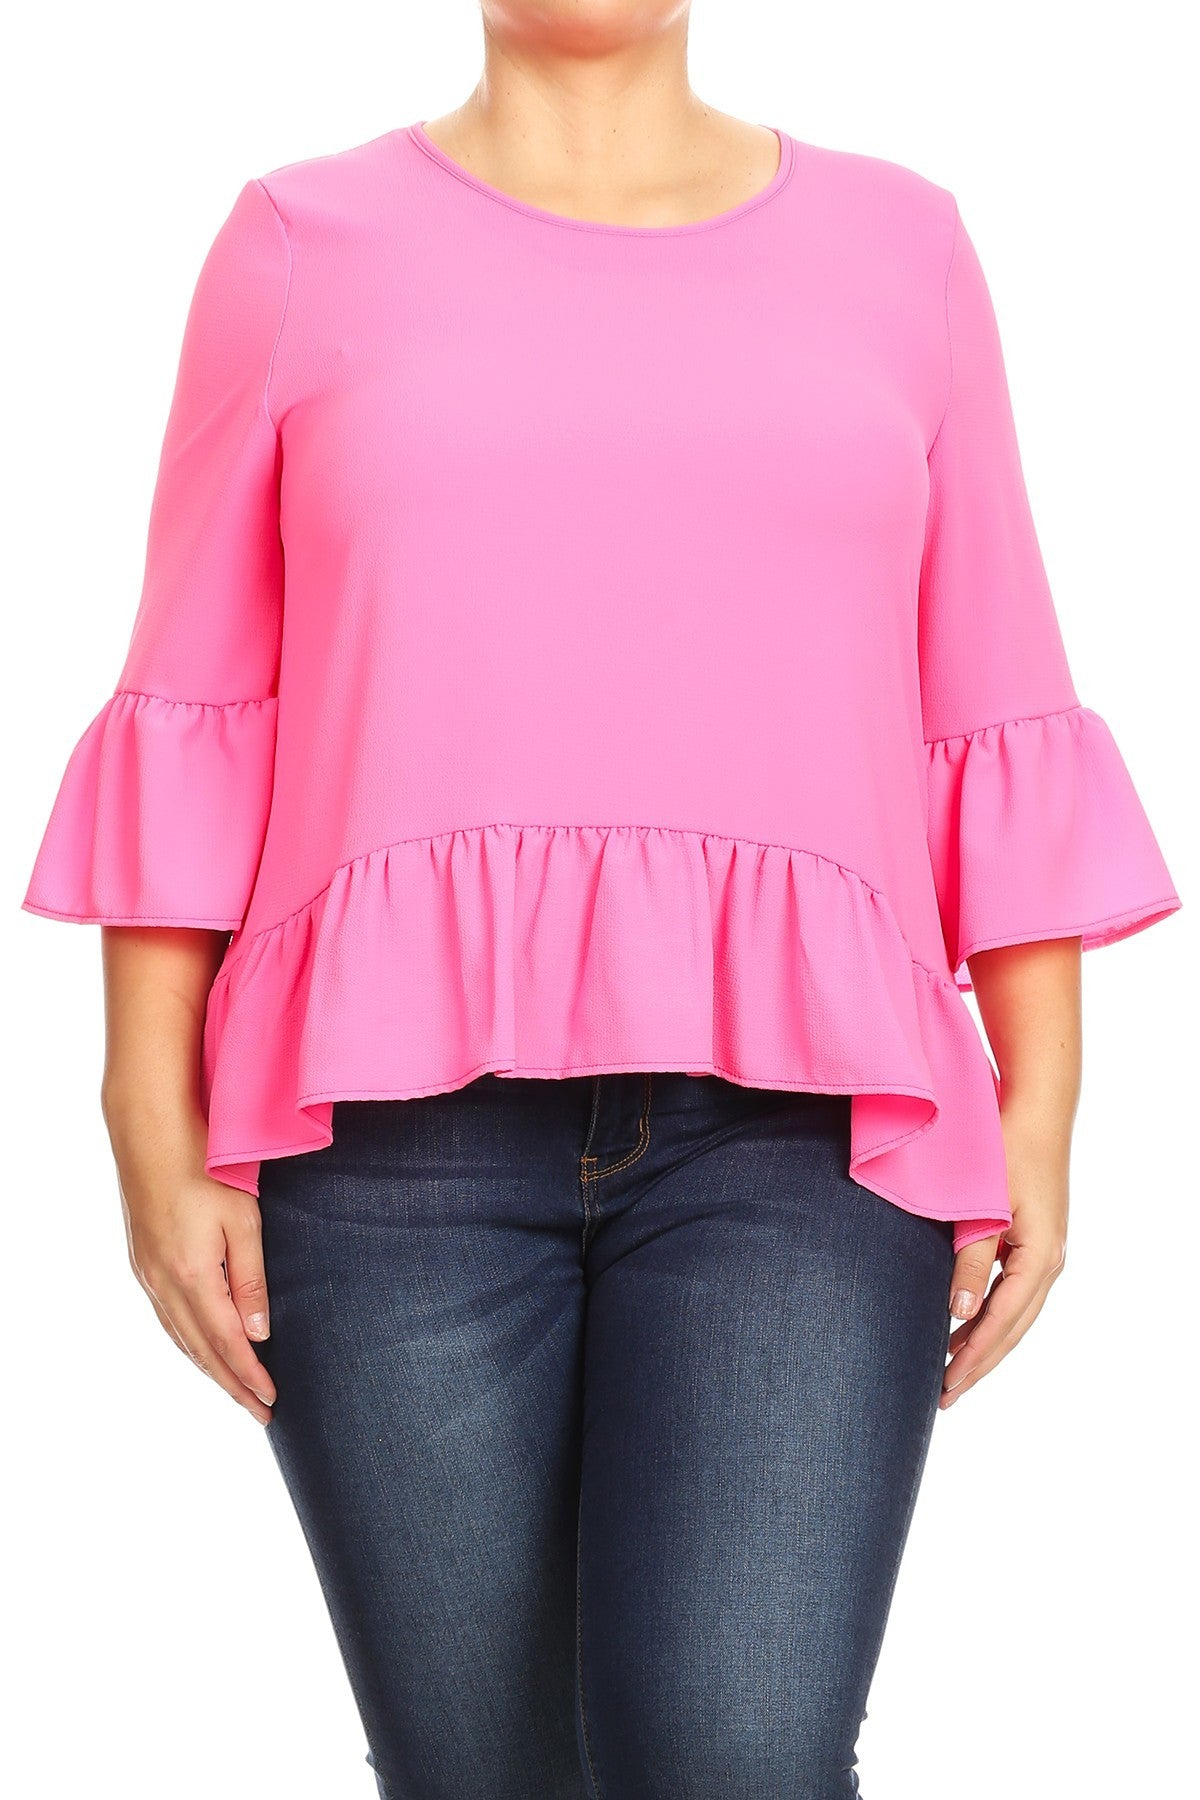 Plus Top ~ Mia ~ Available in Neon Orange and Neon Pink